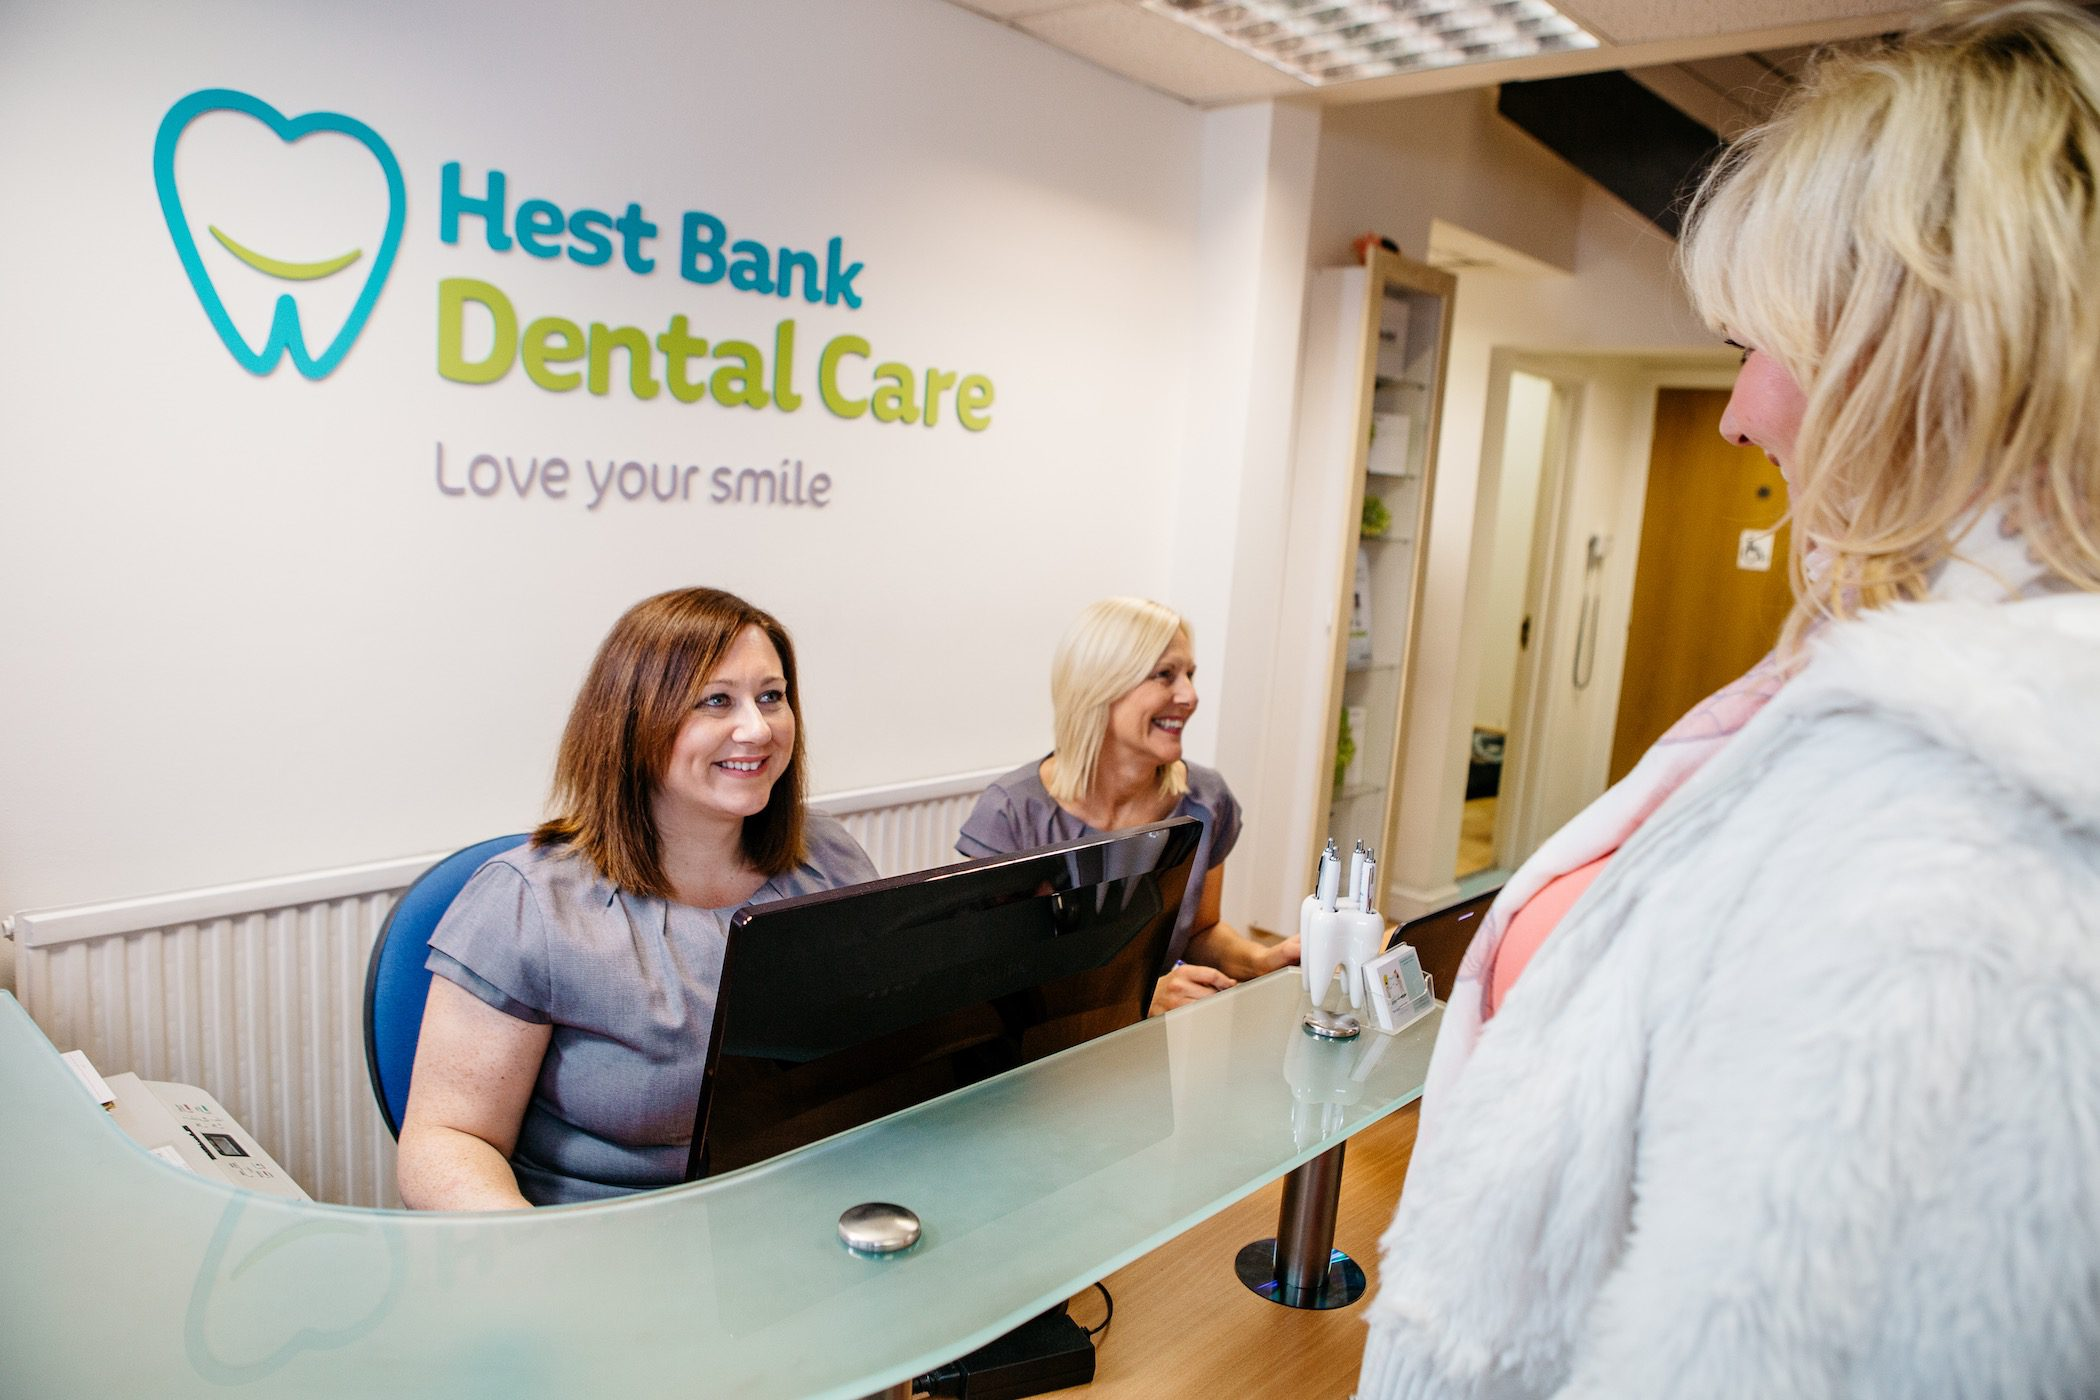 Hest Bank Dental Care